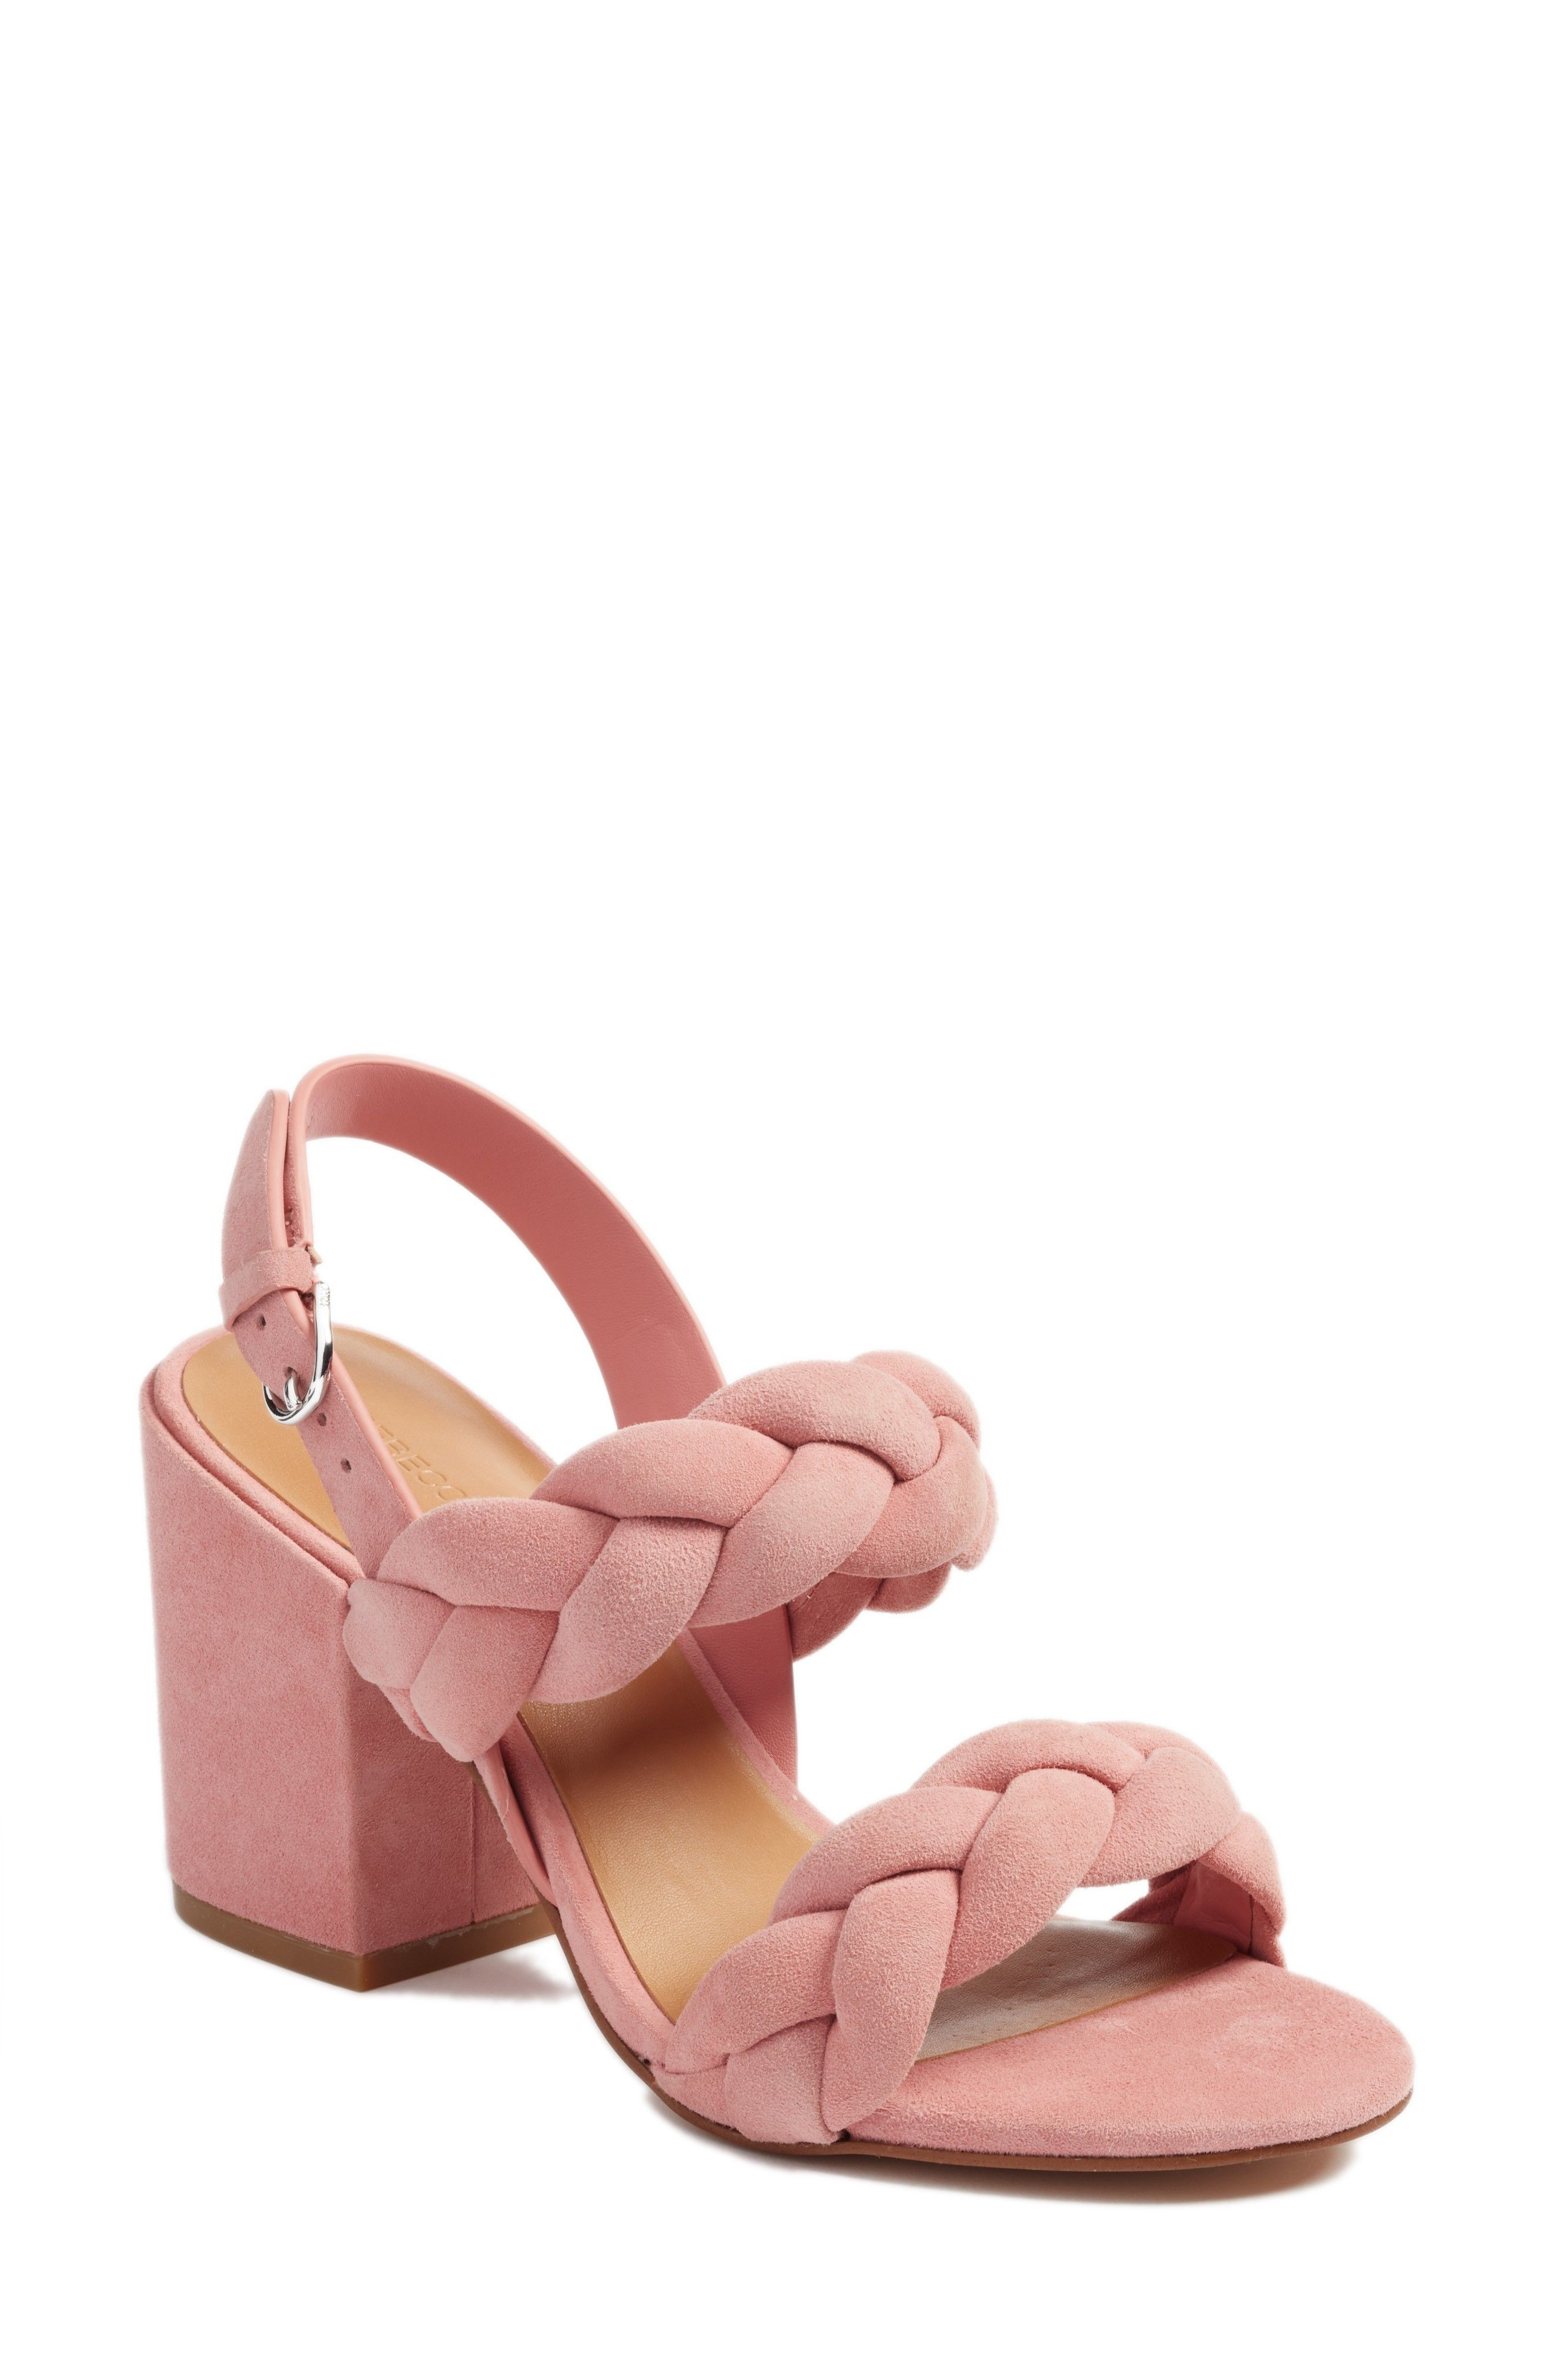 7749c0bb9f26 Rebecca Minkoff Candance Block Heel Pink Suede Braided Sandal from  Nordstrom